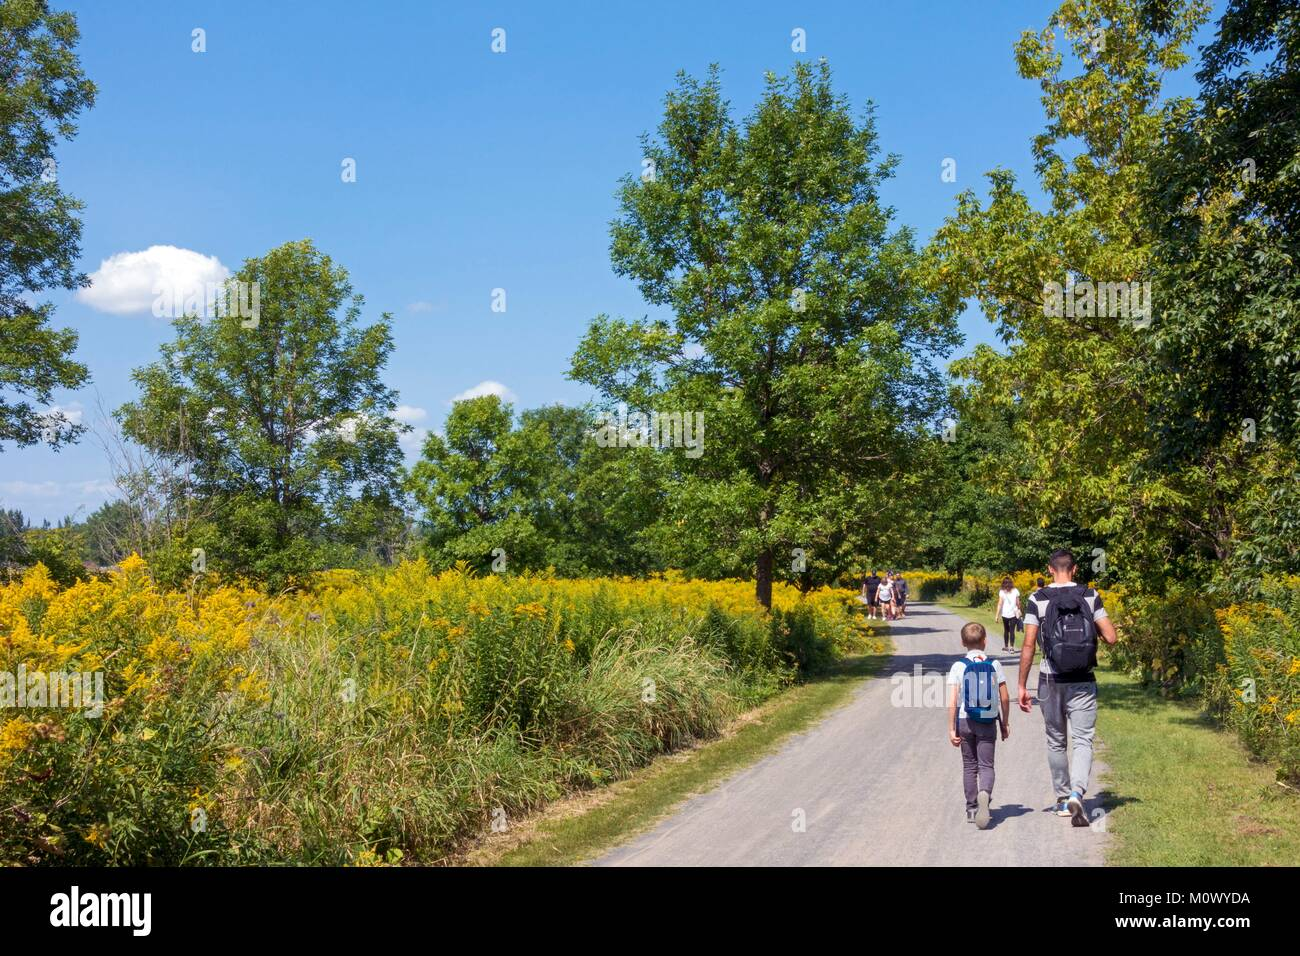 Canada,Quebec province,Montreal,Iles de Boucherville National Park a park on the St. Lawrence Islands famous for - Stock Image